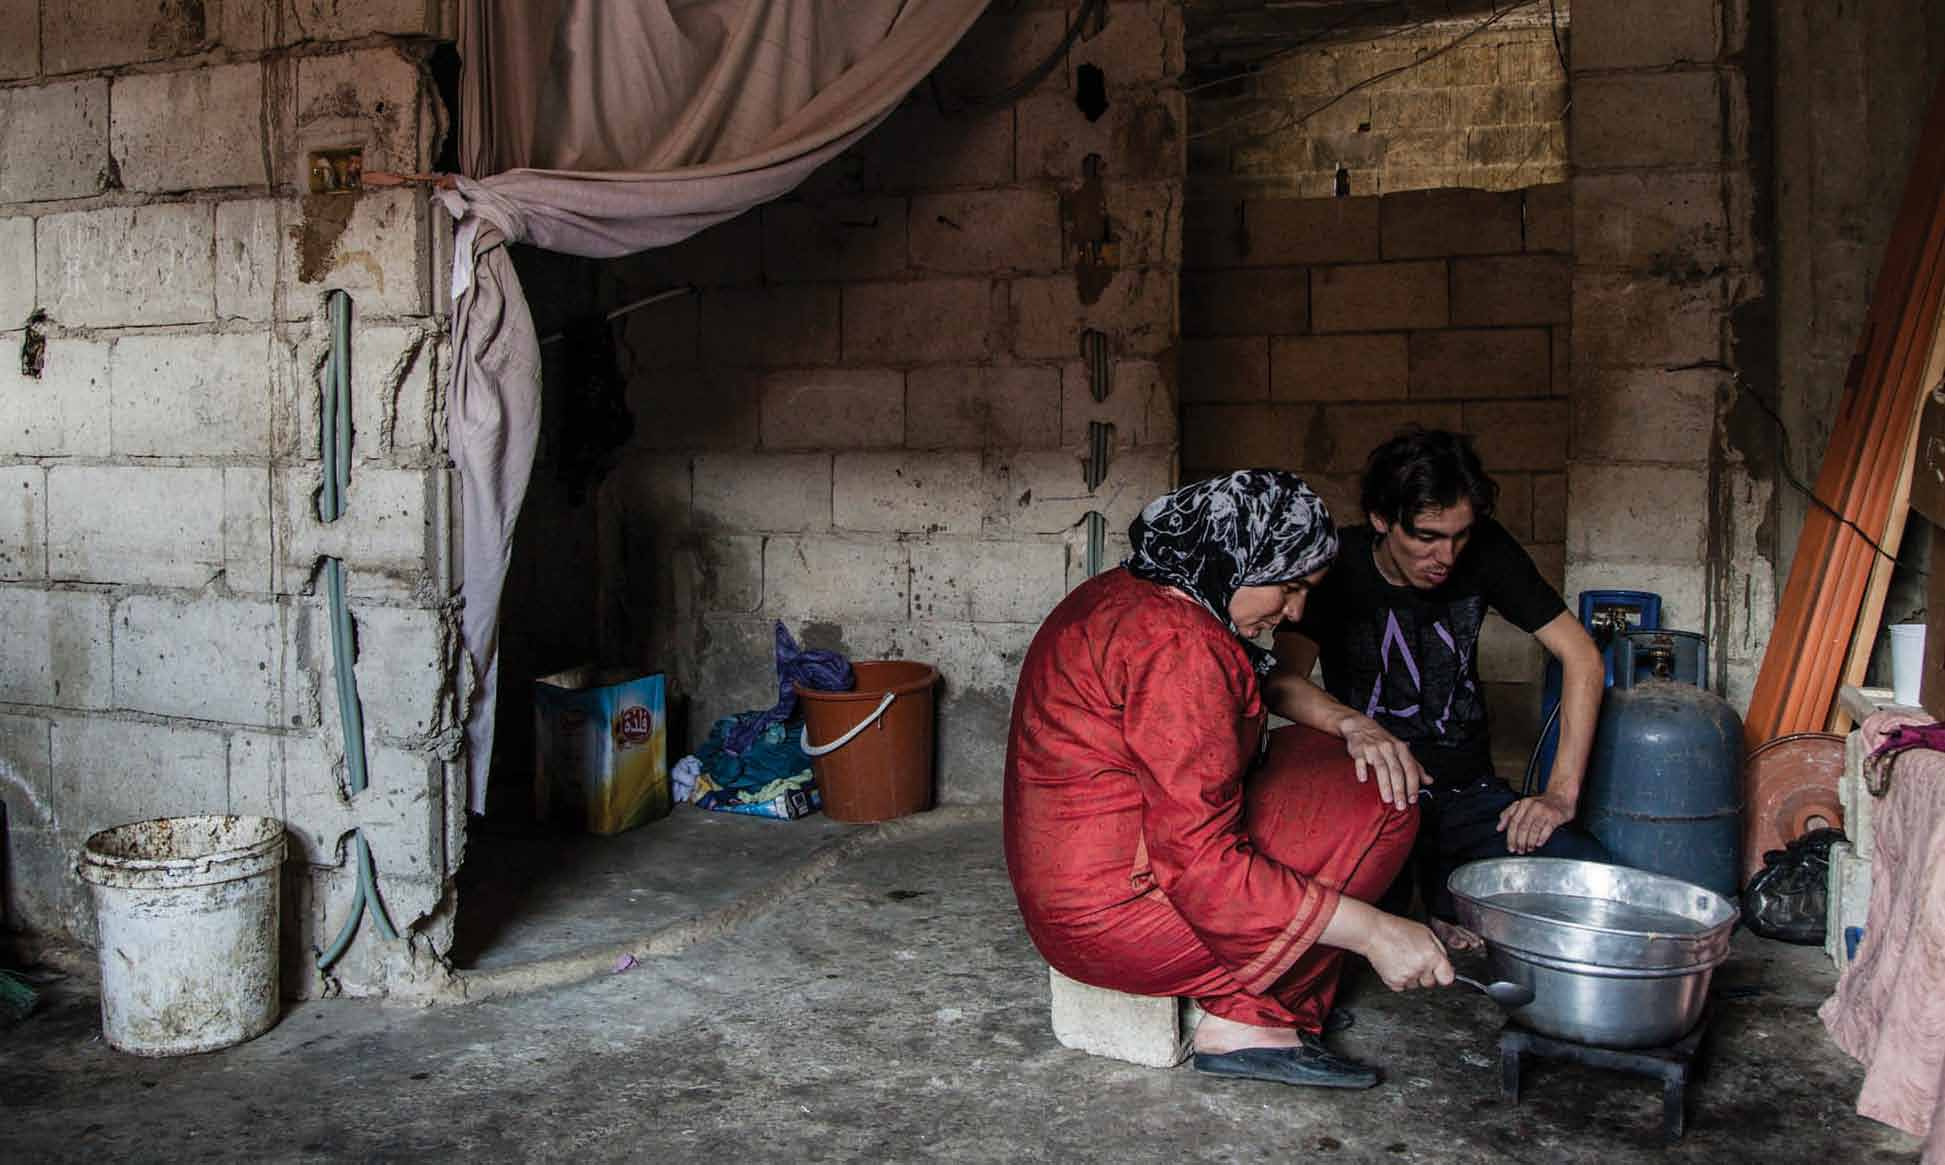 Khitan, a Syrian refugee woman, and her three sons (one shown in the picture) found shelter in an unfinished building in Tripoli, Lebanon with several other Syrian families.